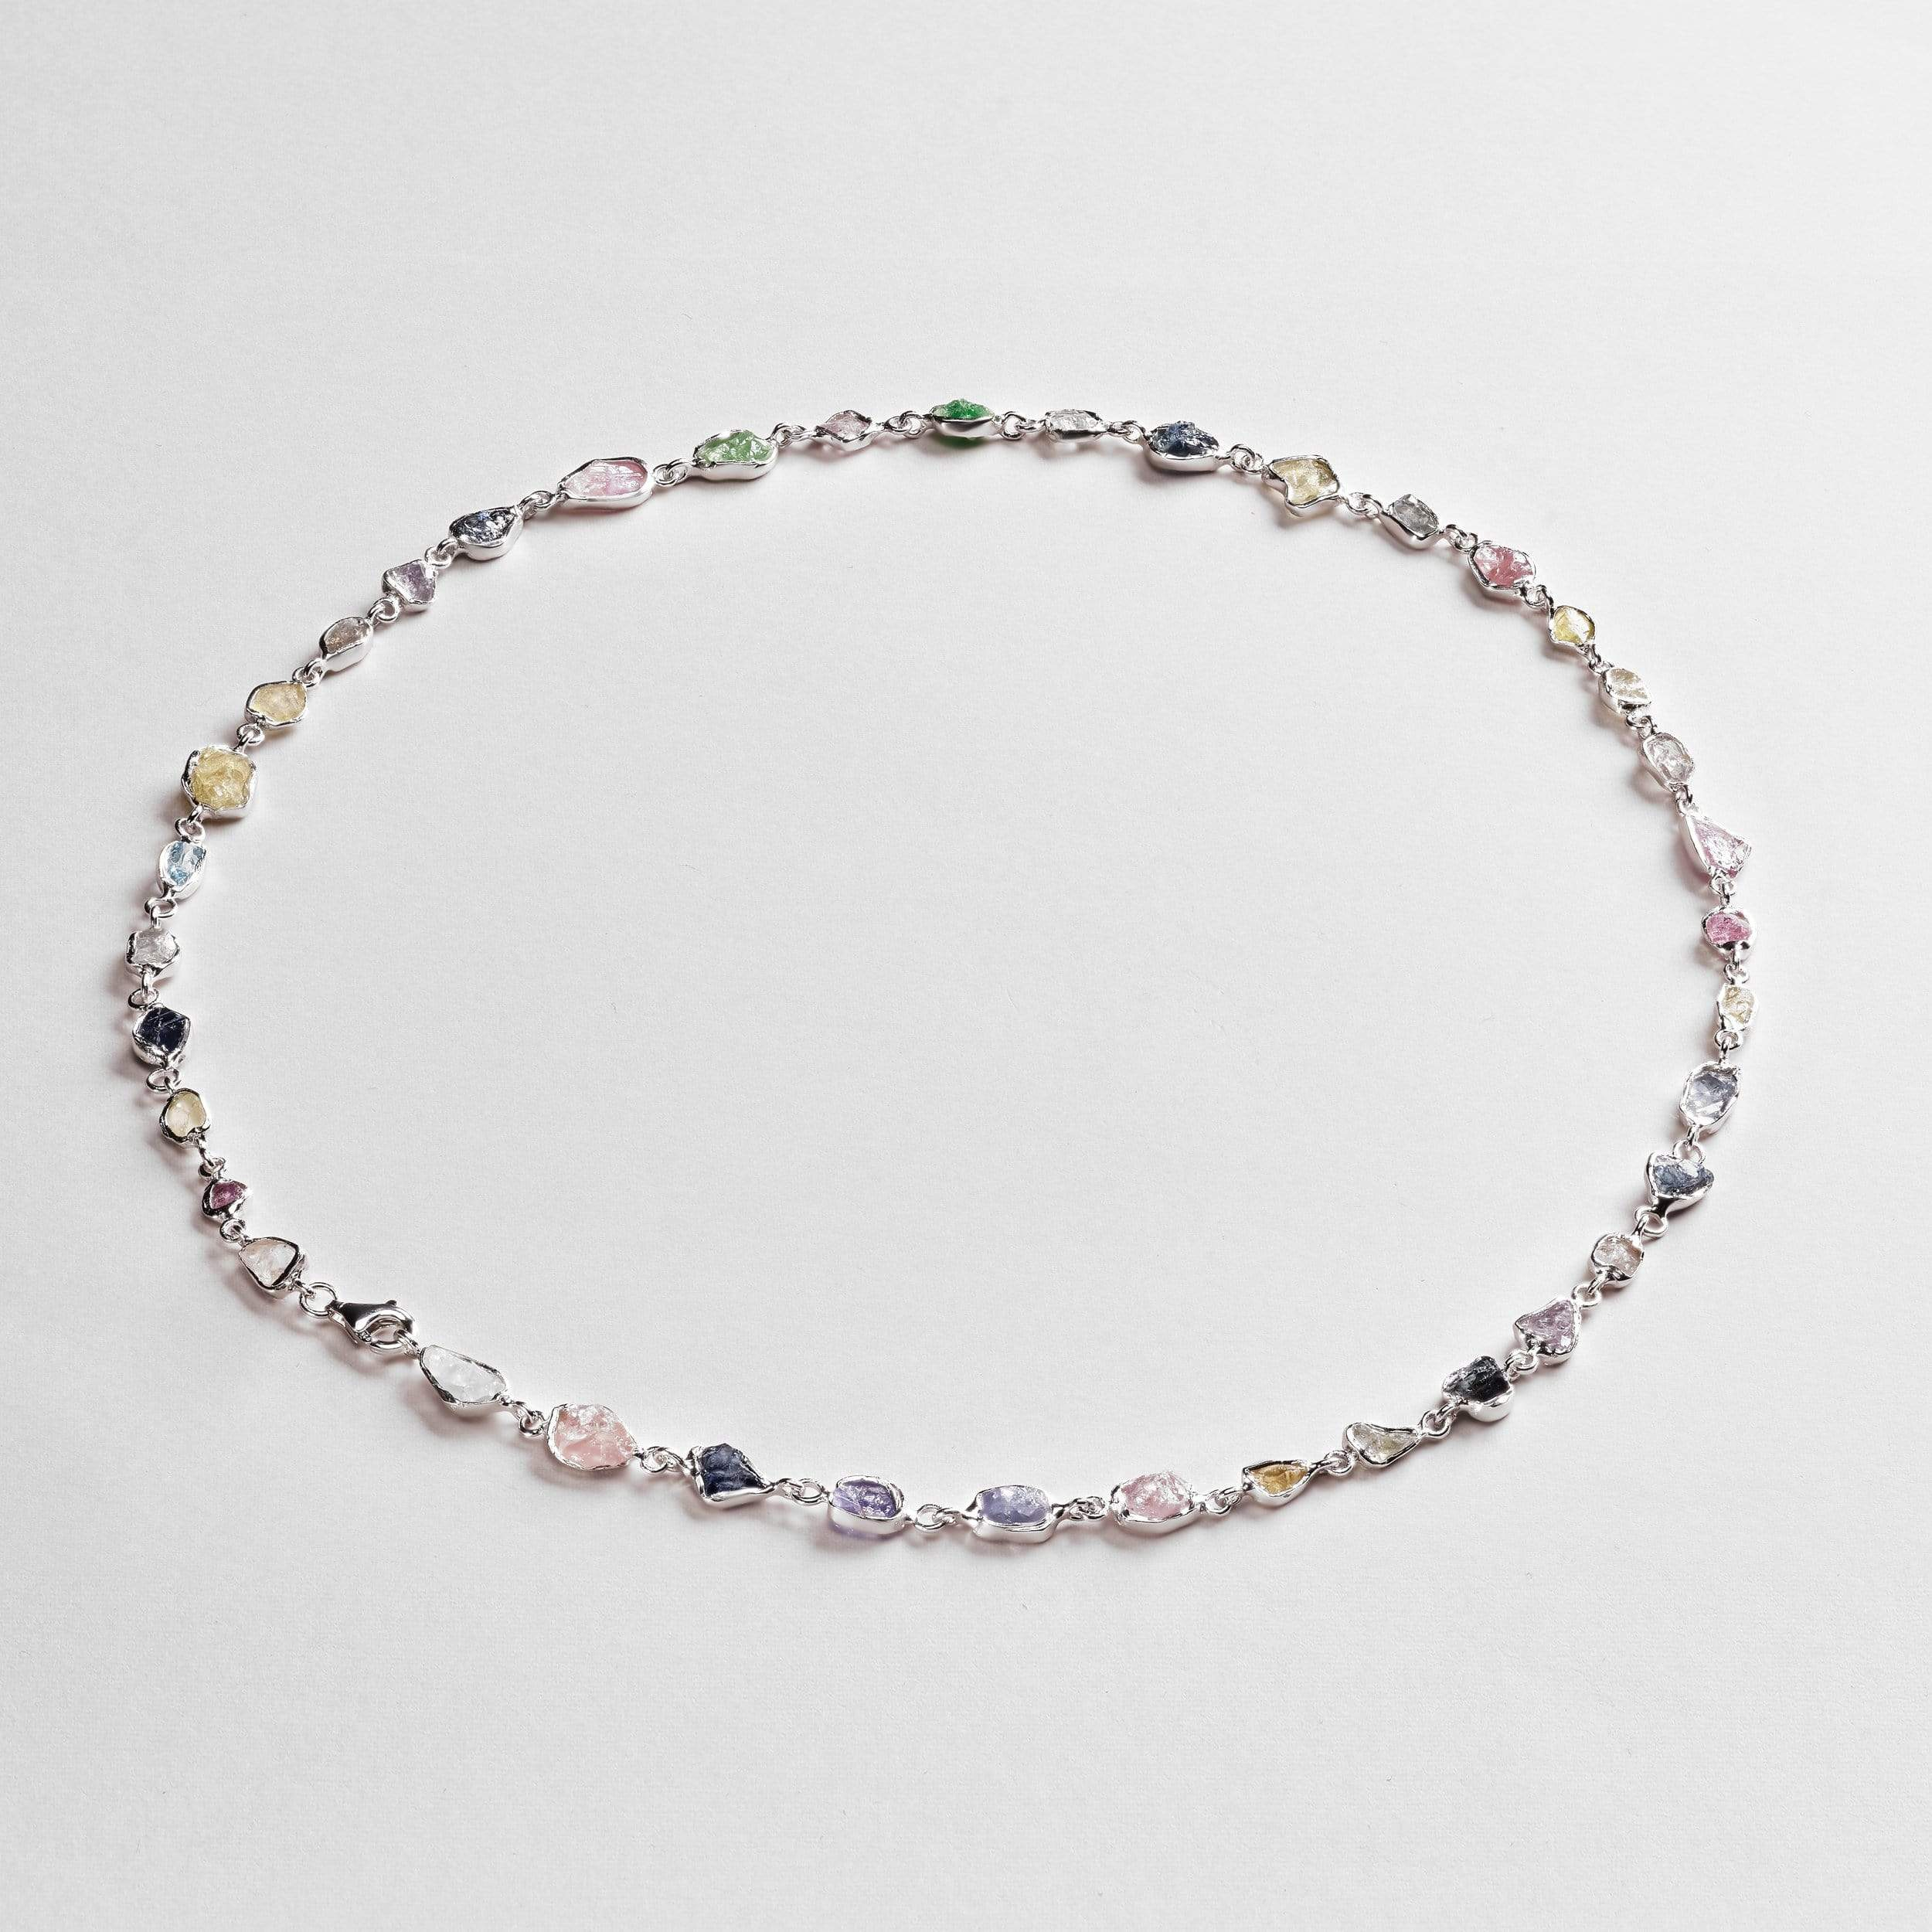 Arista Small Mixed Stones Necklace